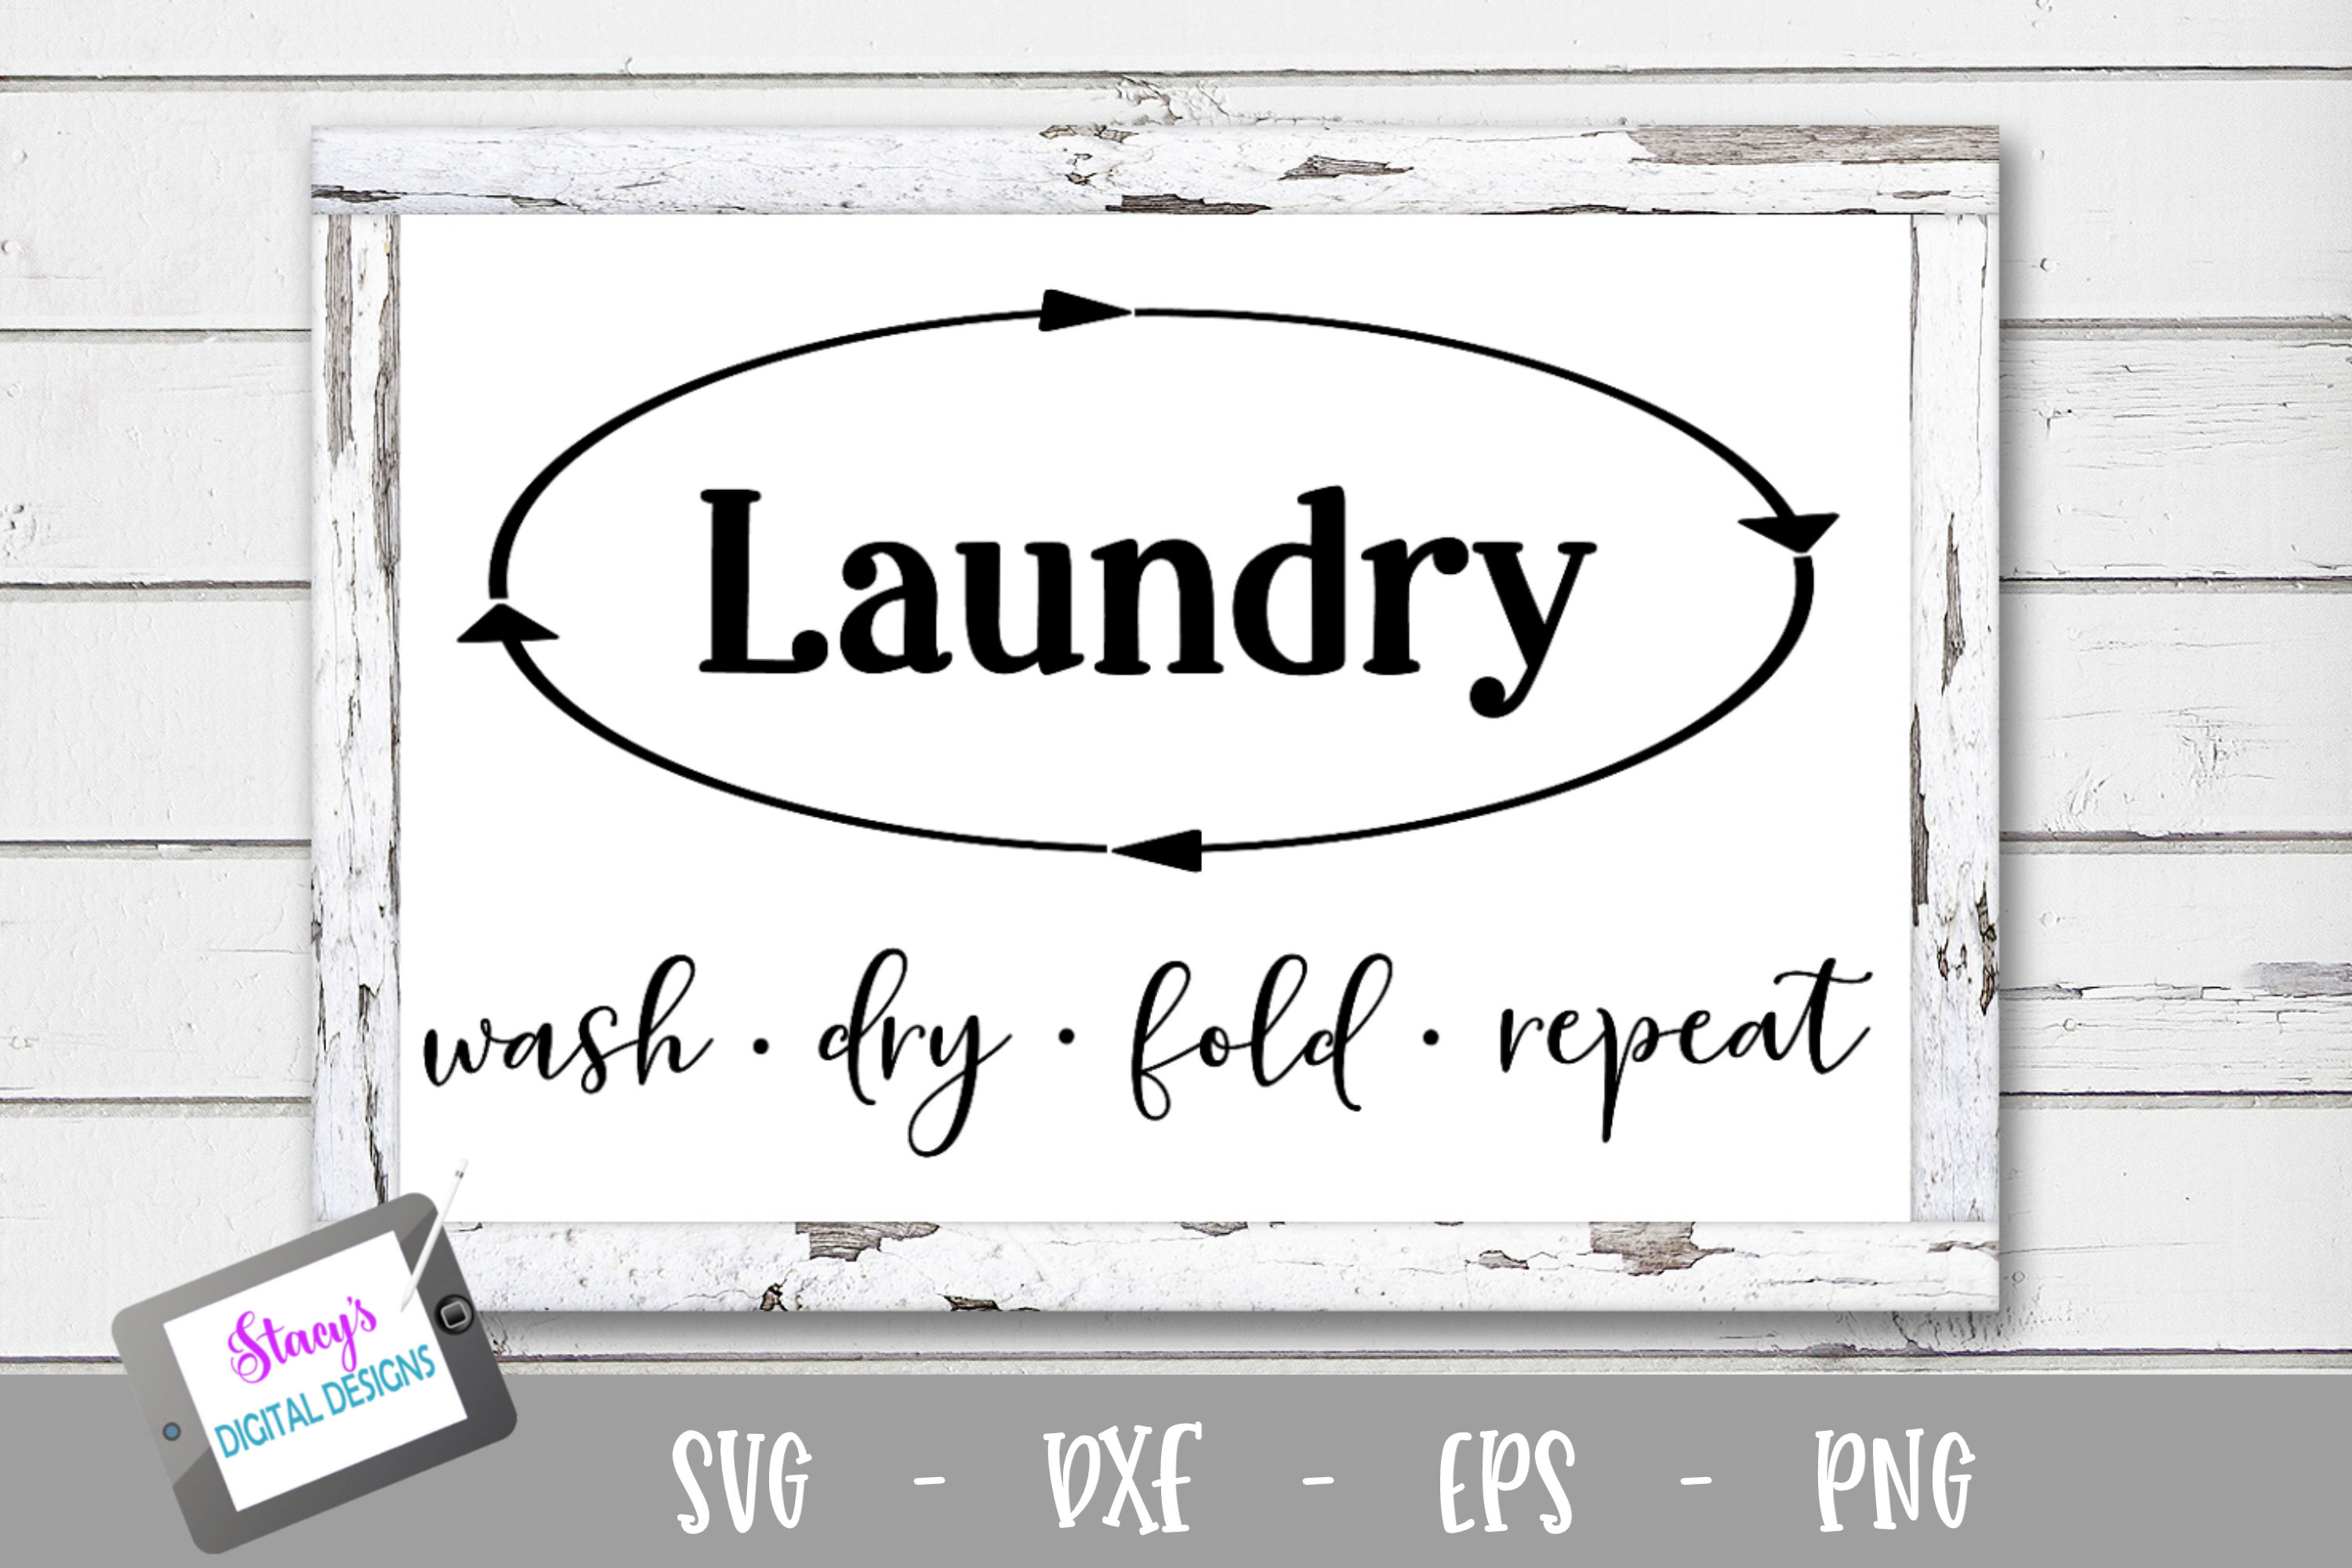 Laundry SVG Bundle - 6 Laundry room sign SVG files example image 7